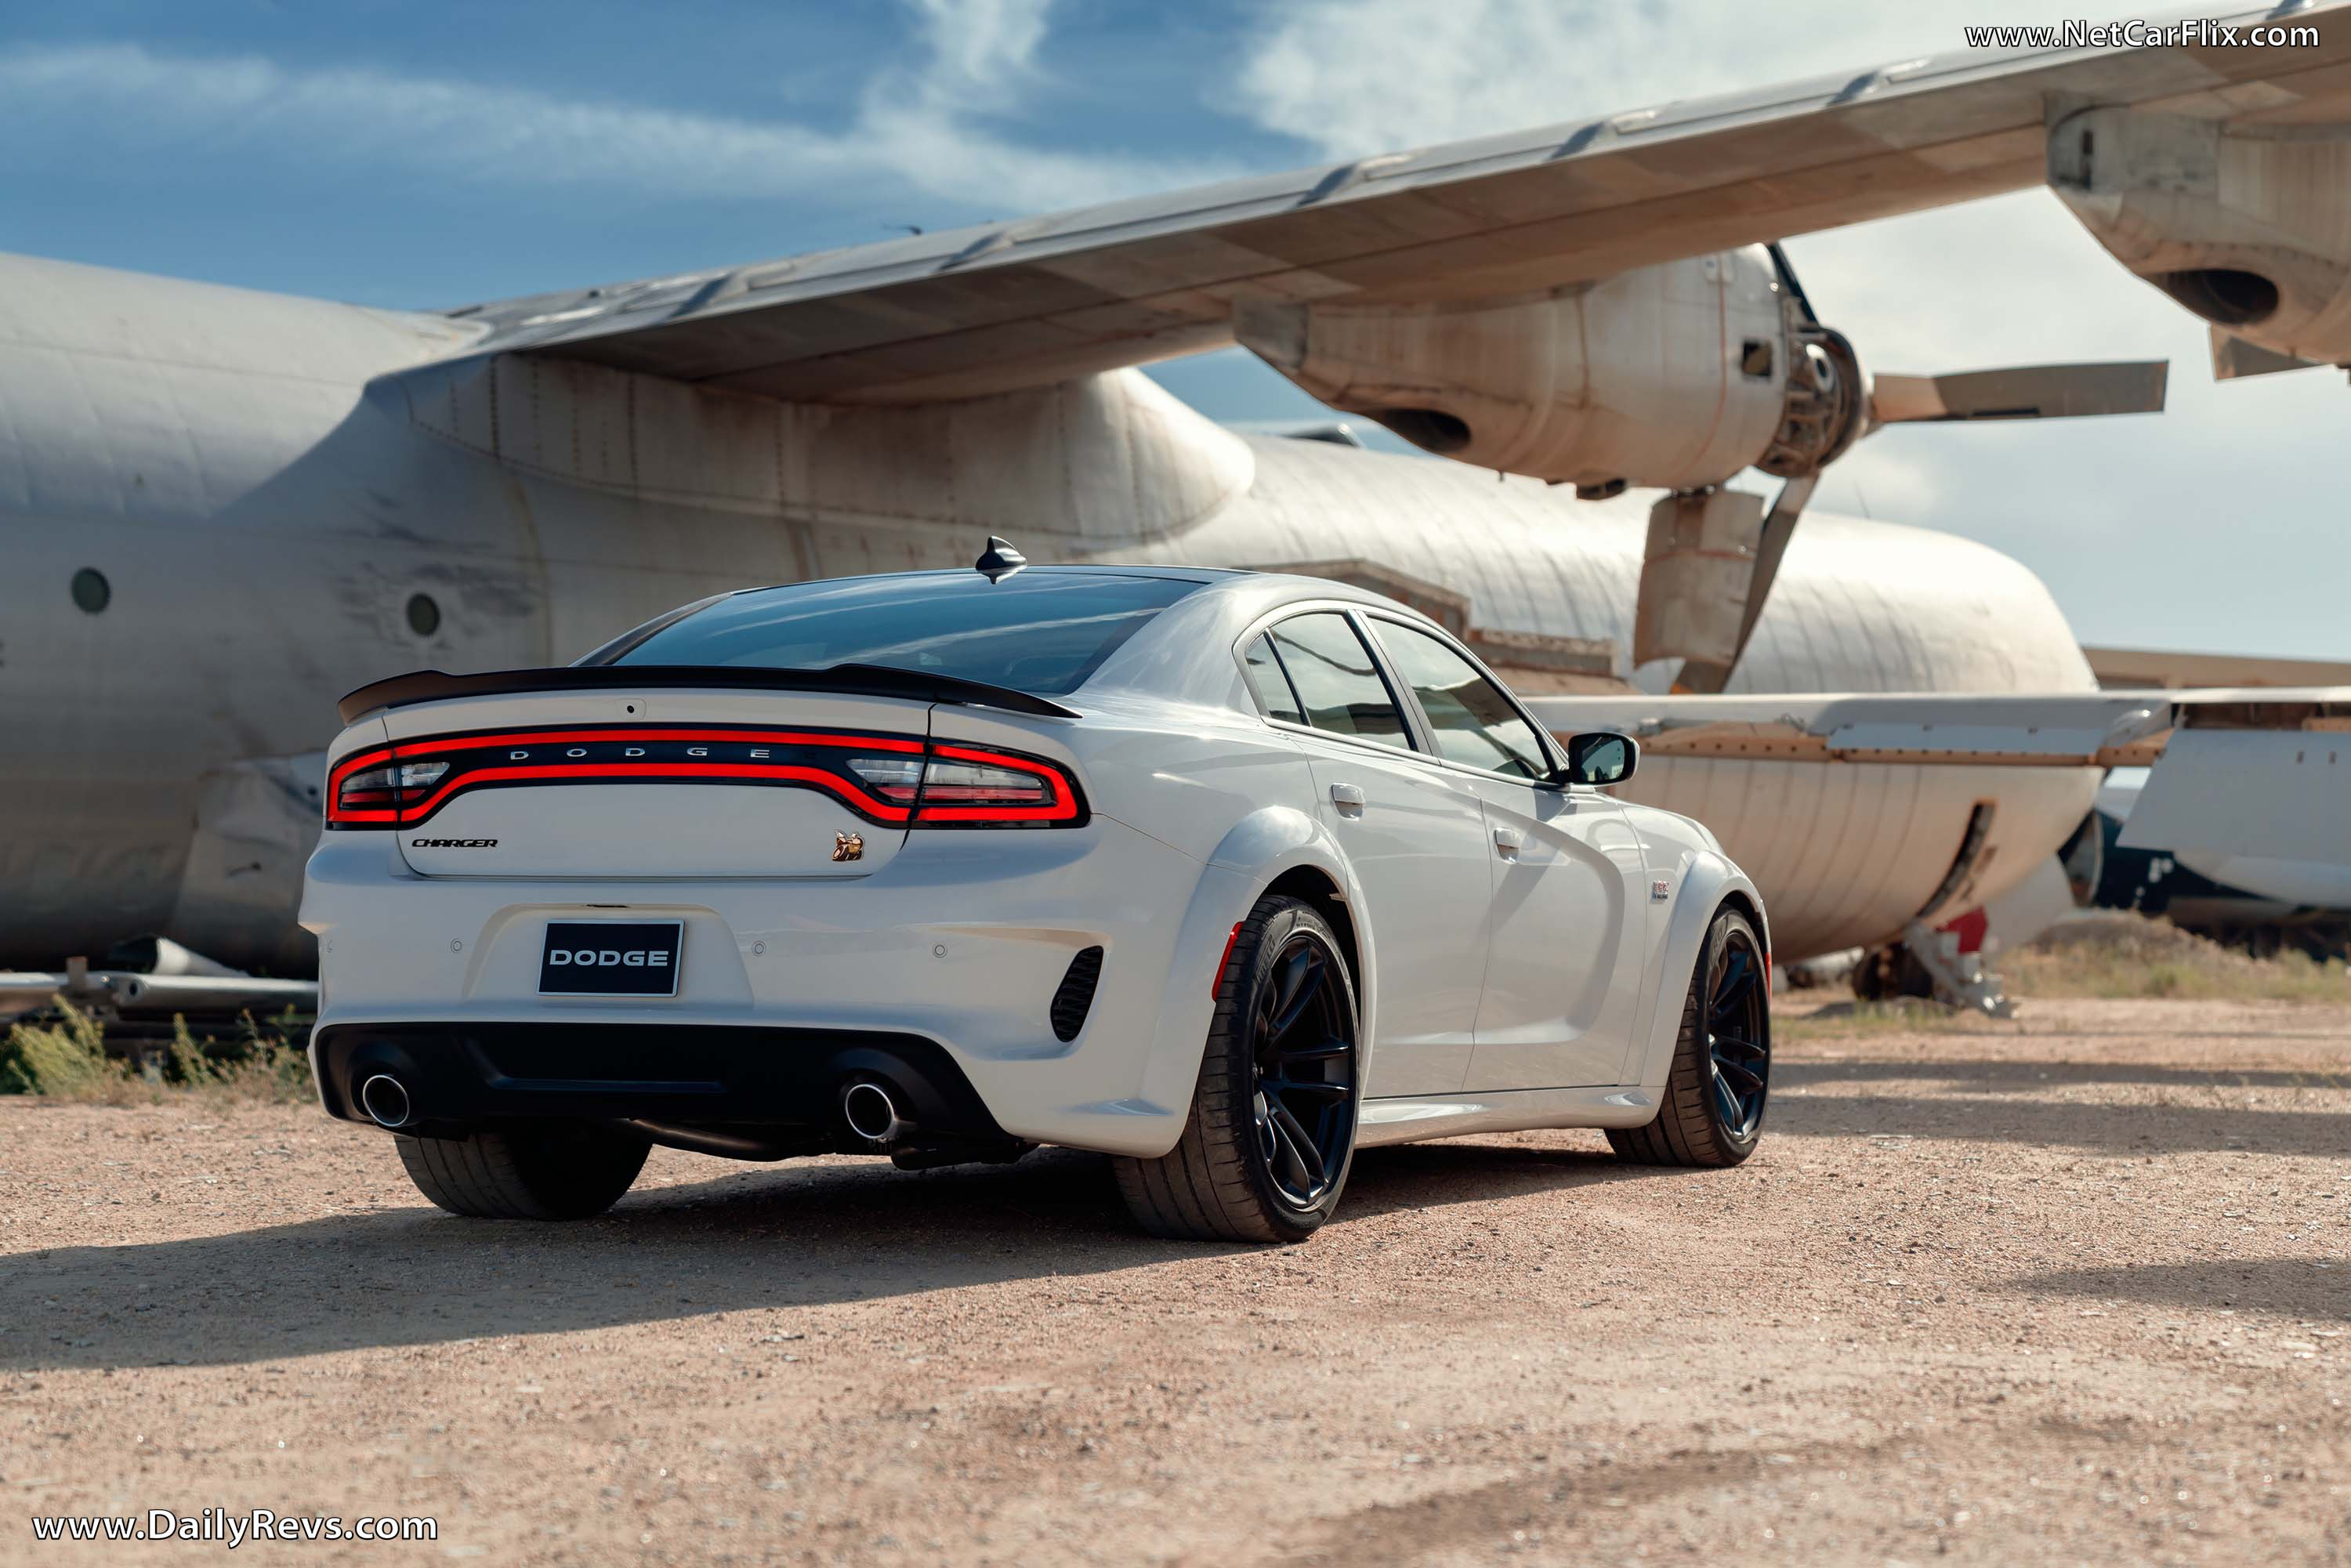 2020 dodge charger scat pack widebody - hd pictures, specs